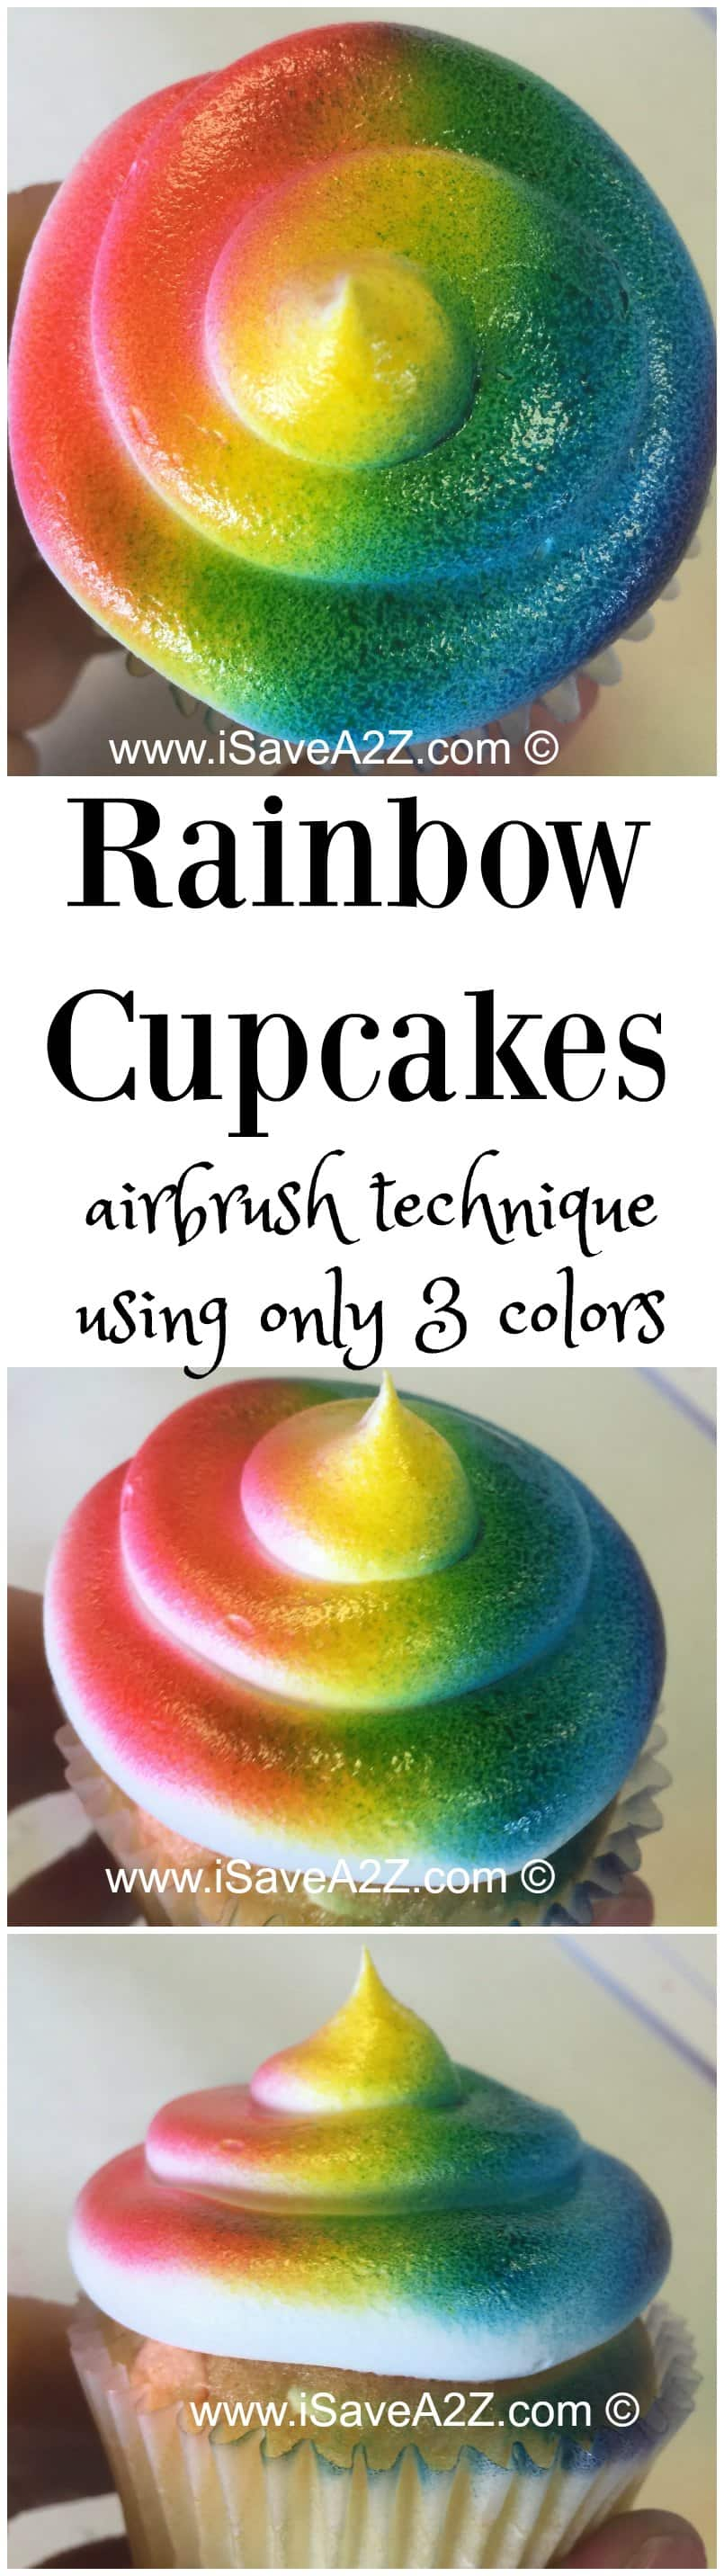 How to Airbrush Cupcakes into a rainbow design using only 3 colors!